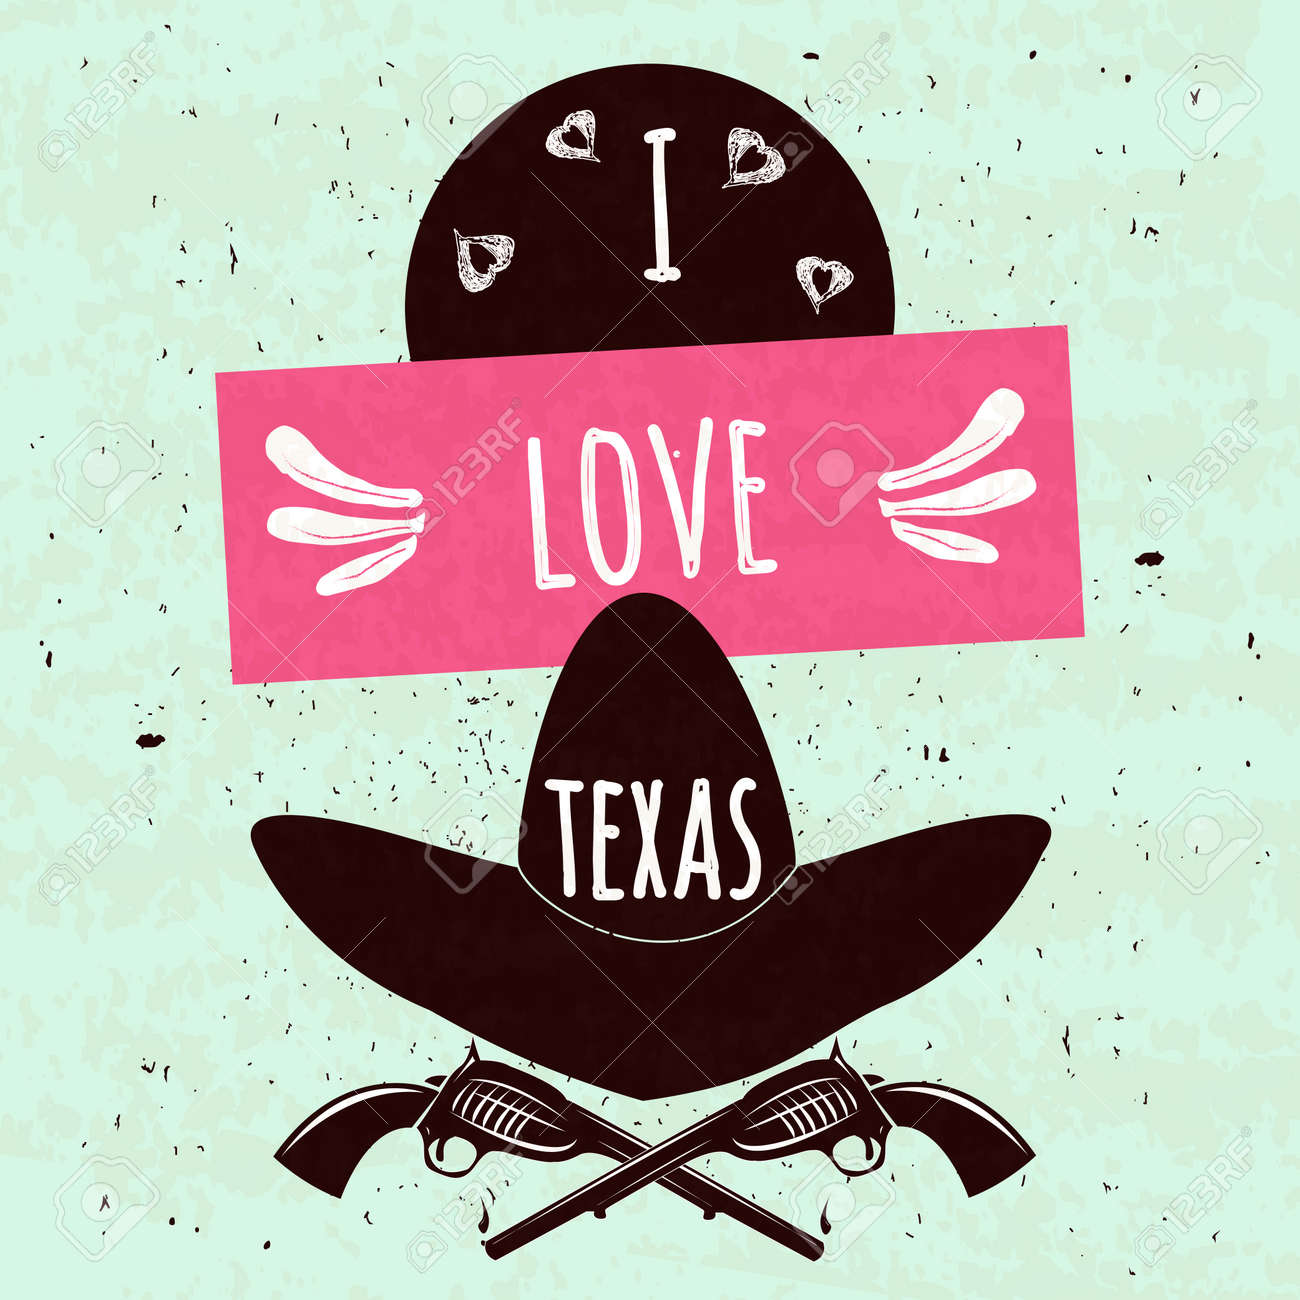 Juicy colorful typographic poster with the attributes of the state of Texas America\'s hat and arms on a light background with a texture. I love Texas. - 50592413